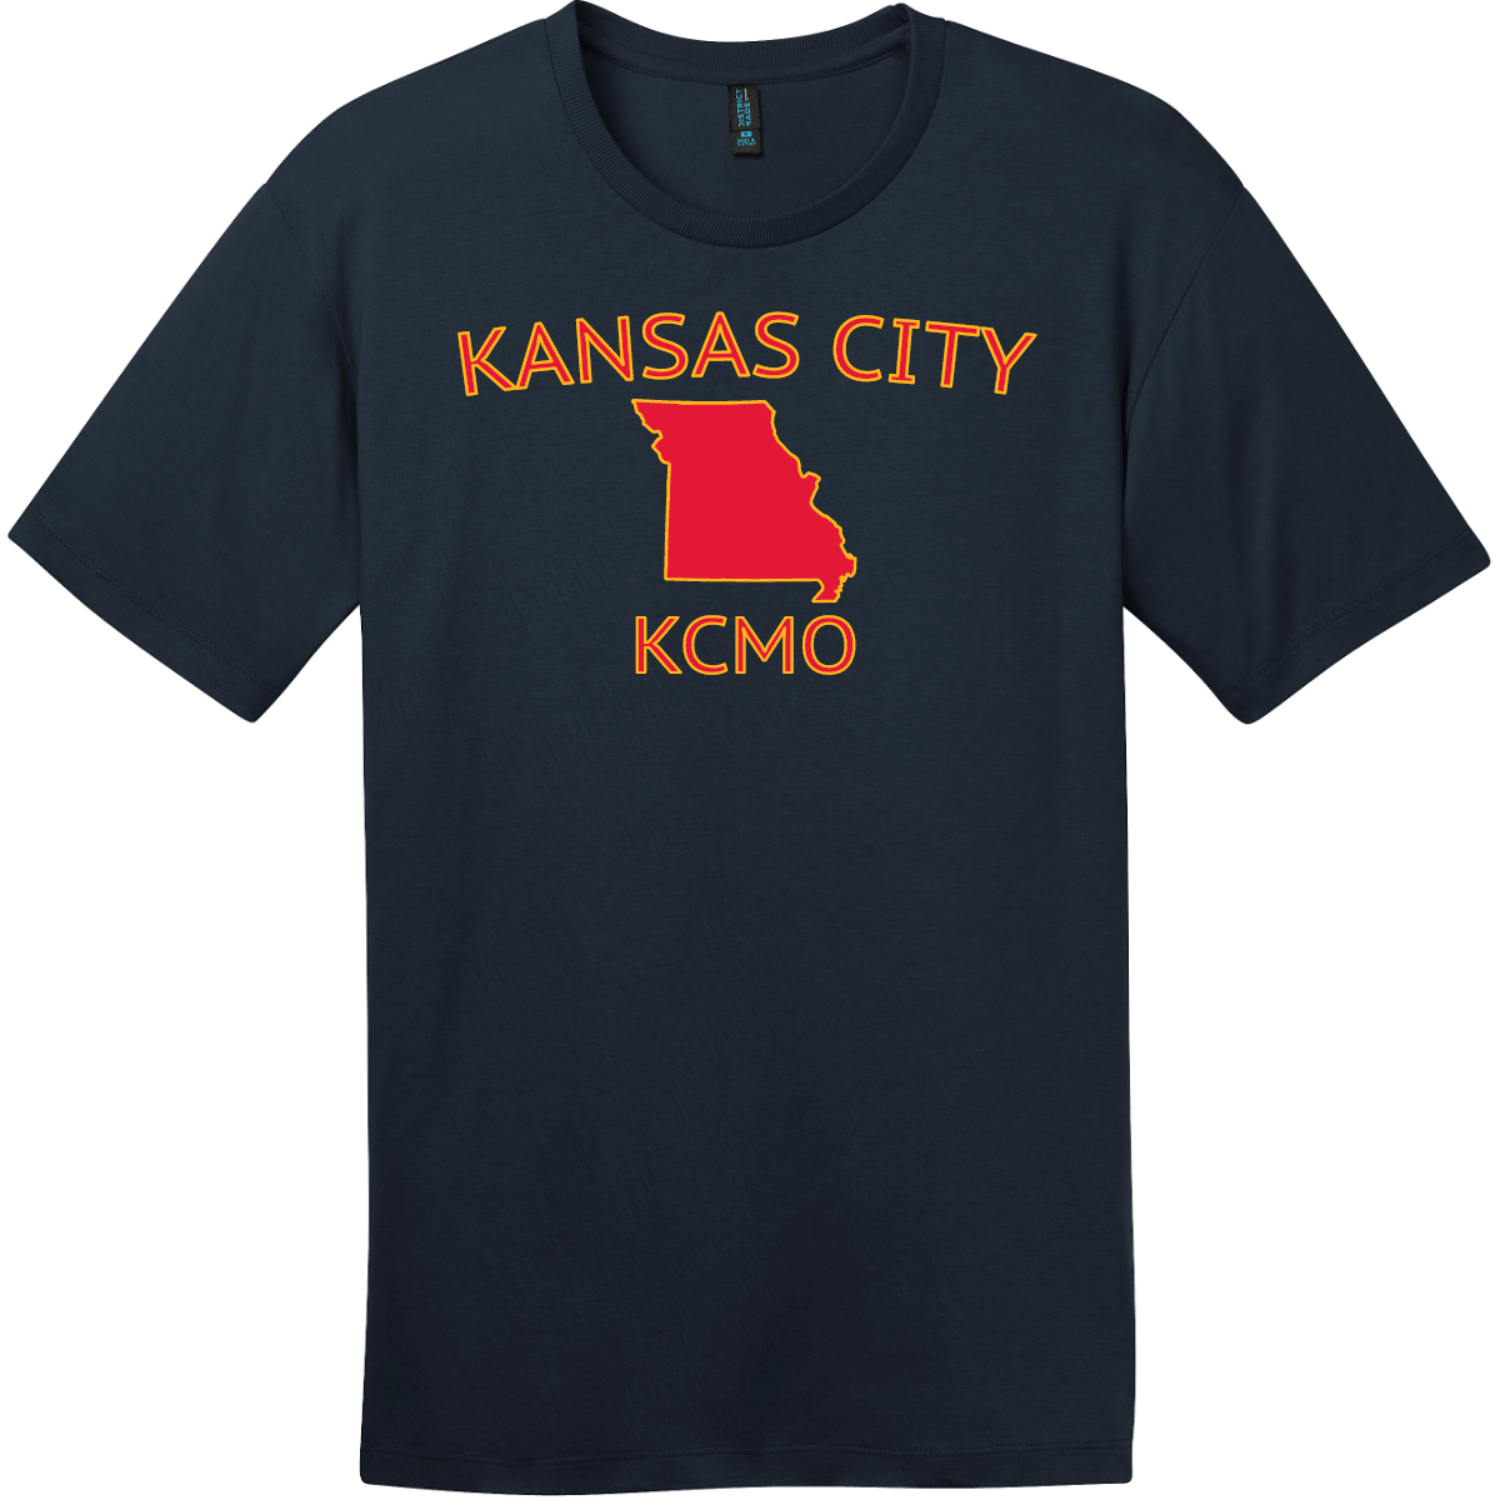 Kansas City KCMO T-Shirt New Navy District Perfect Weight Tee DT104